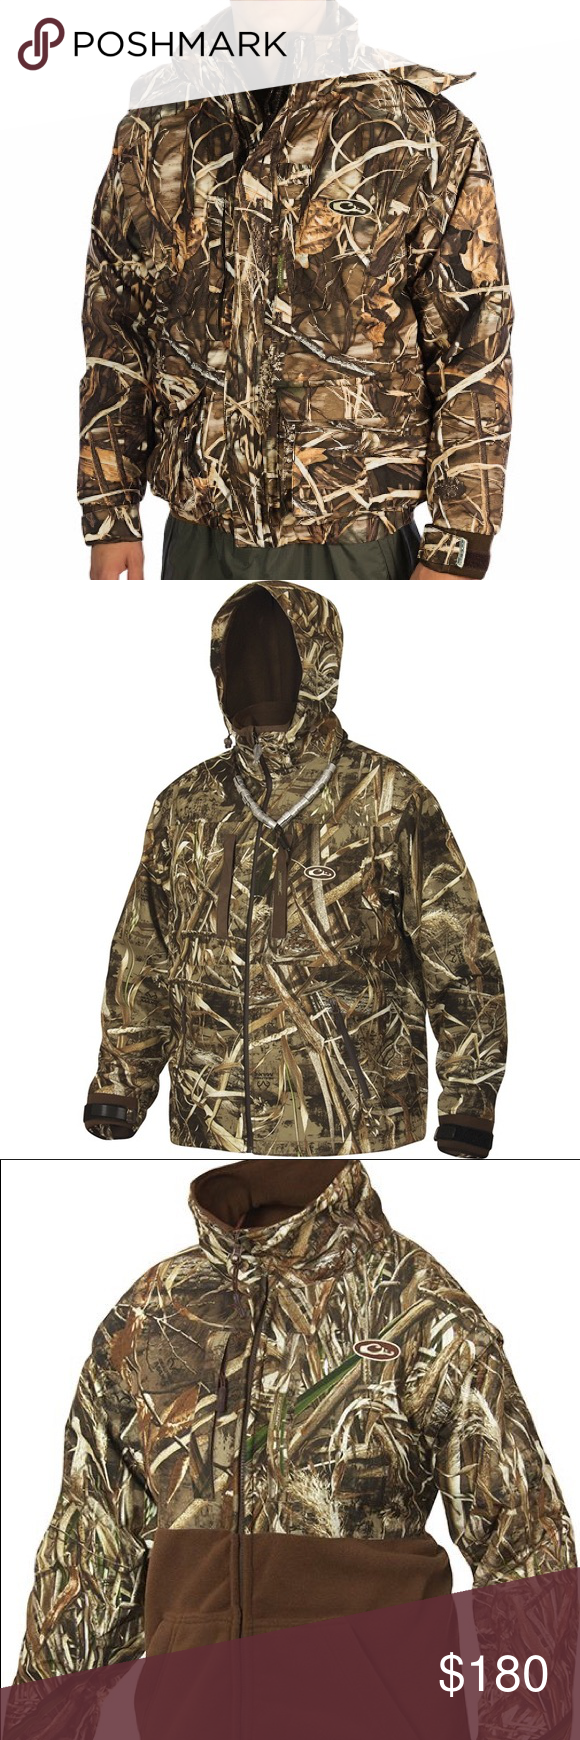 Nwot Drake 3 In 1 Lst Eqwador Jacket Never Worn In Brand New Condition North Face Jackets Coats Performance Jackets North Face Jacket Jackets How To Wear [ 1740 x 580 Pixel ]